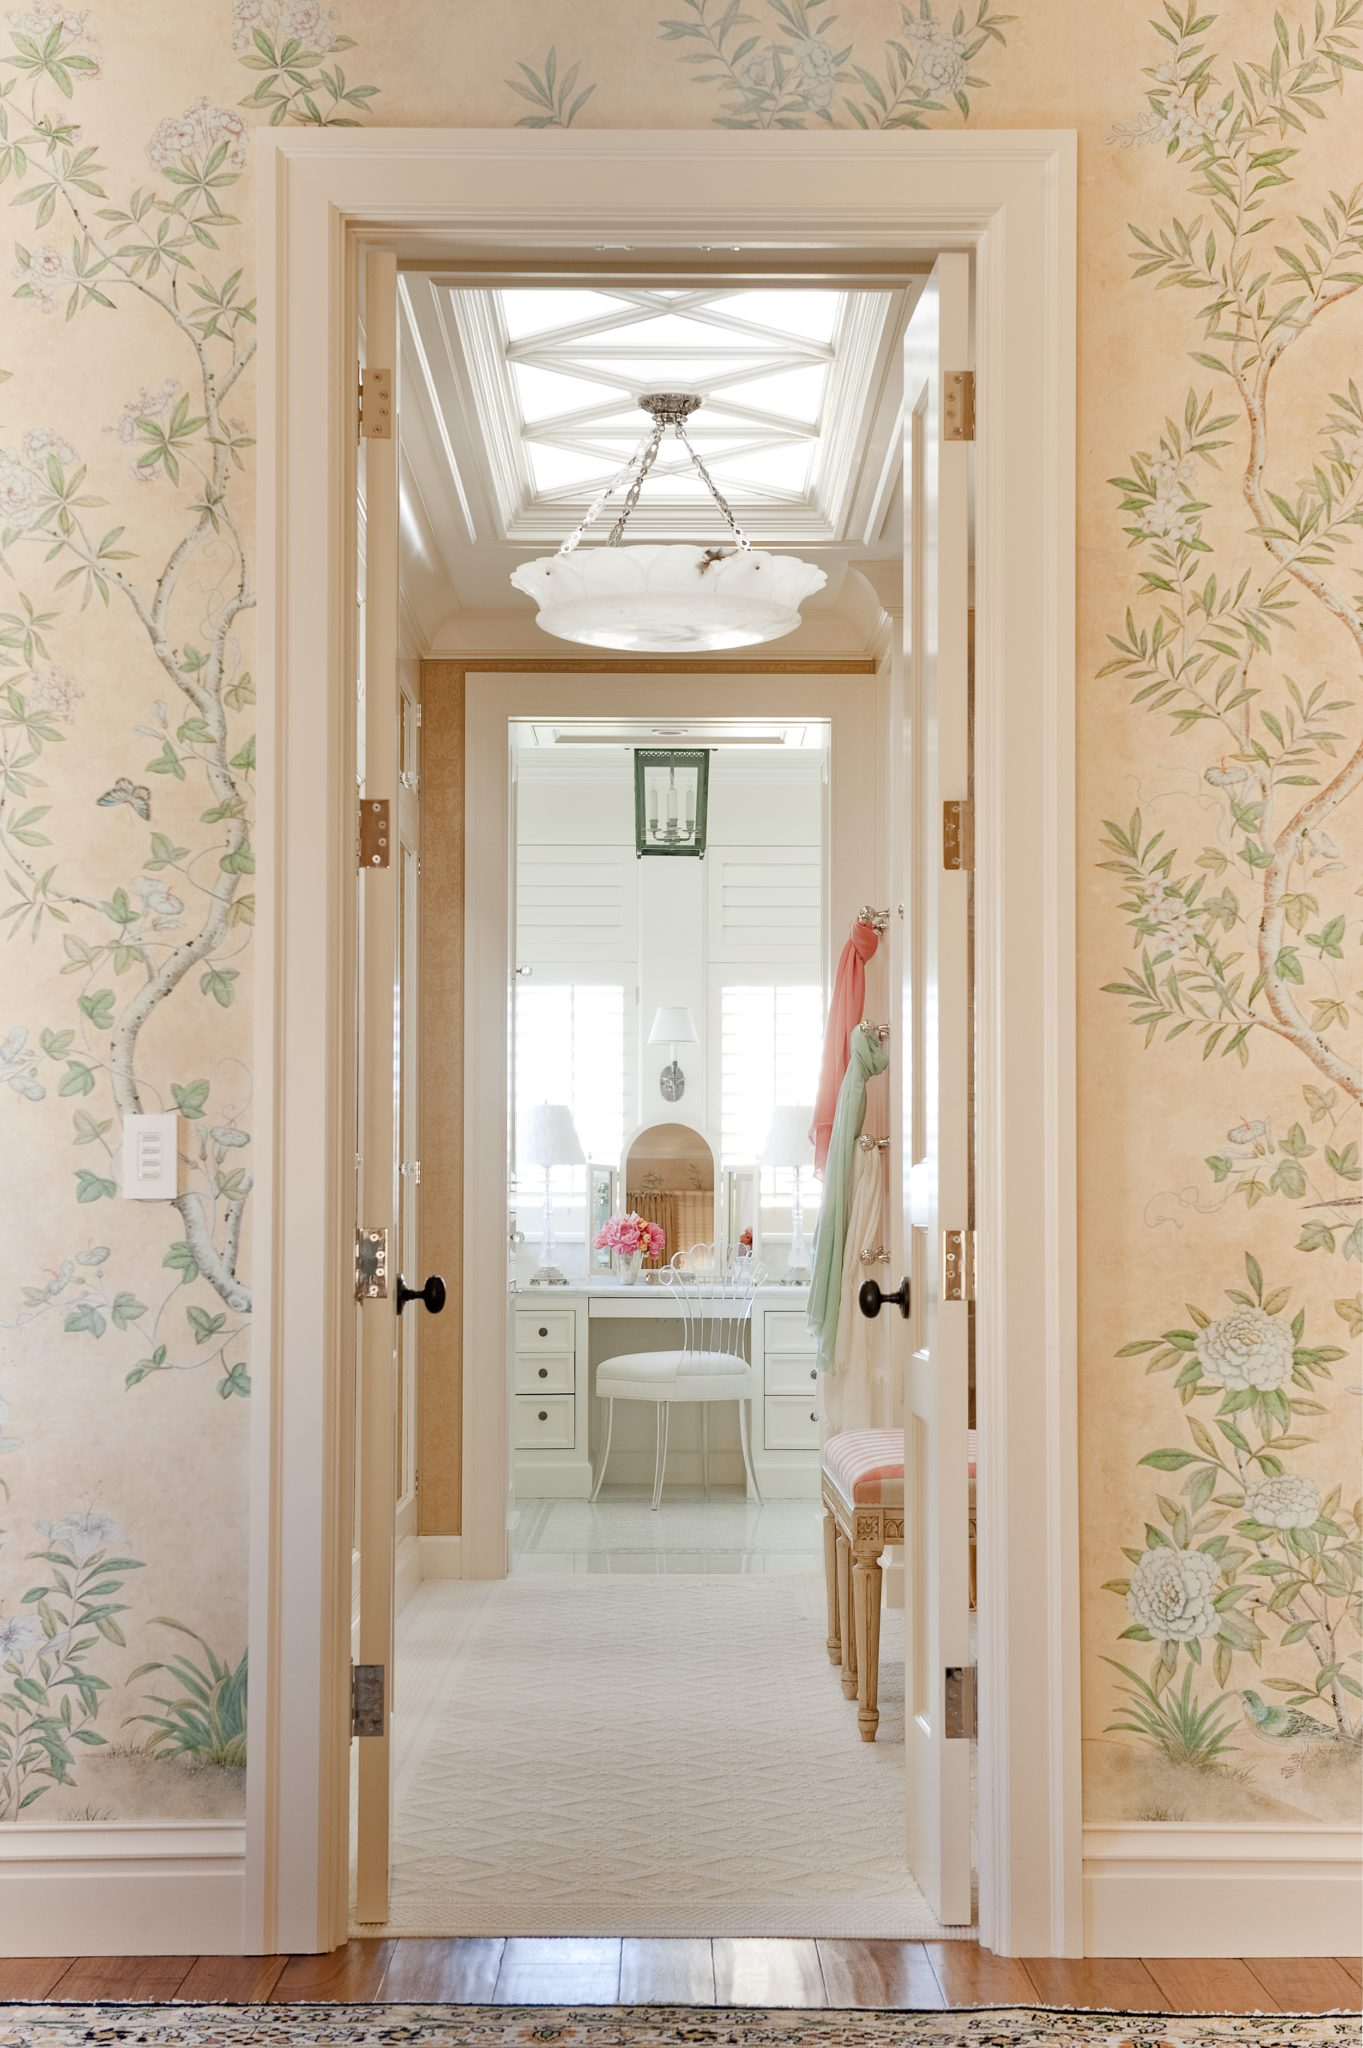 The custom wallpaper was handpainted in a Georgian style by Gracie, and the patina gives it the appearance of an 18th-century wallpaper.